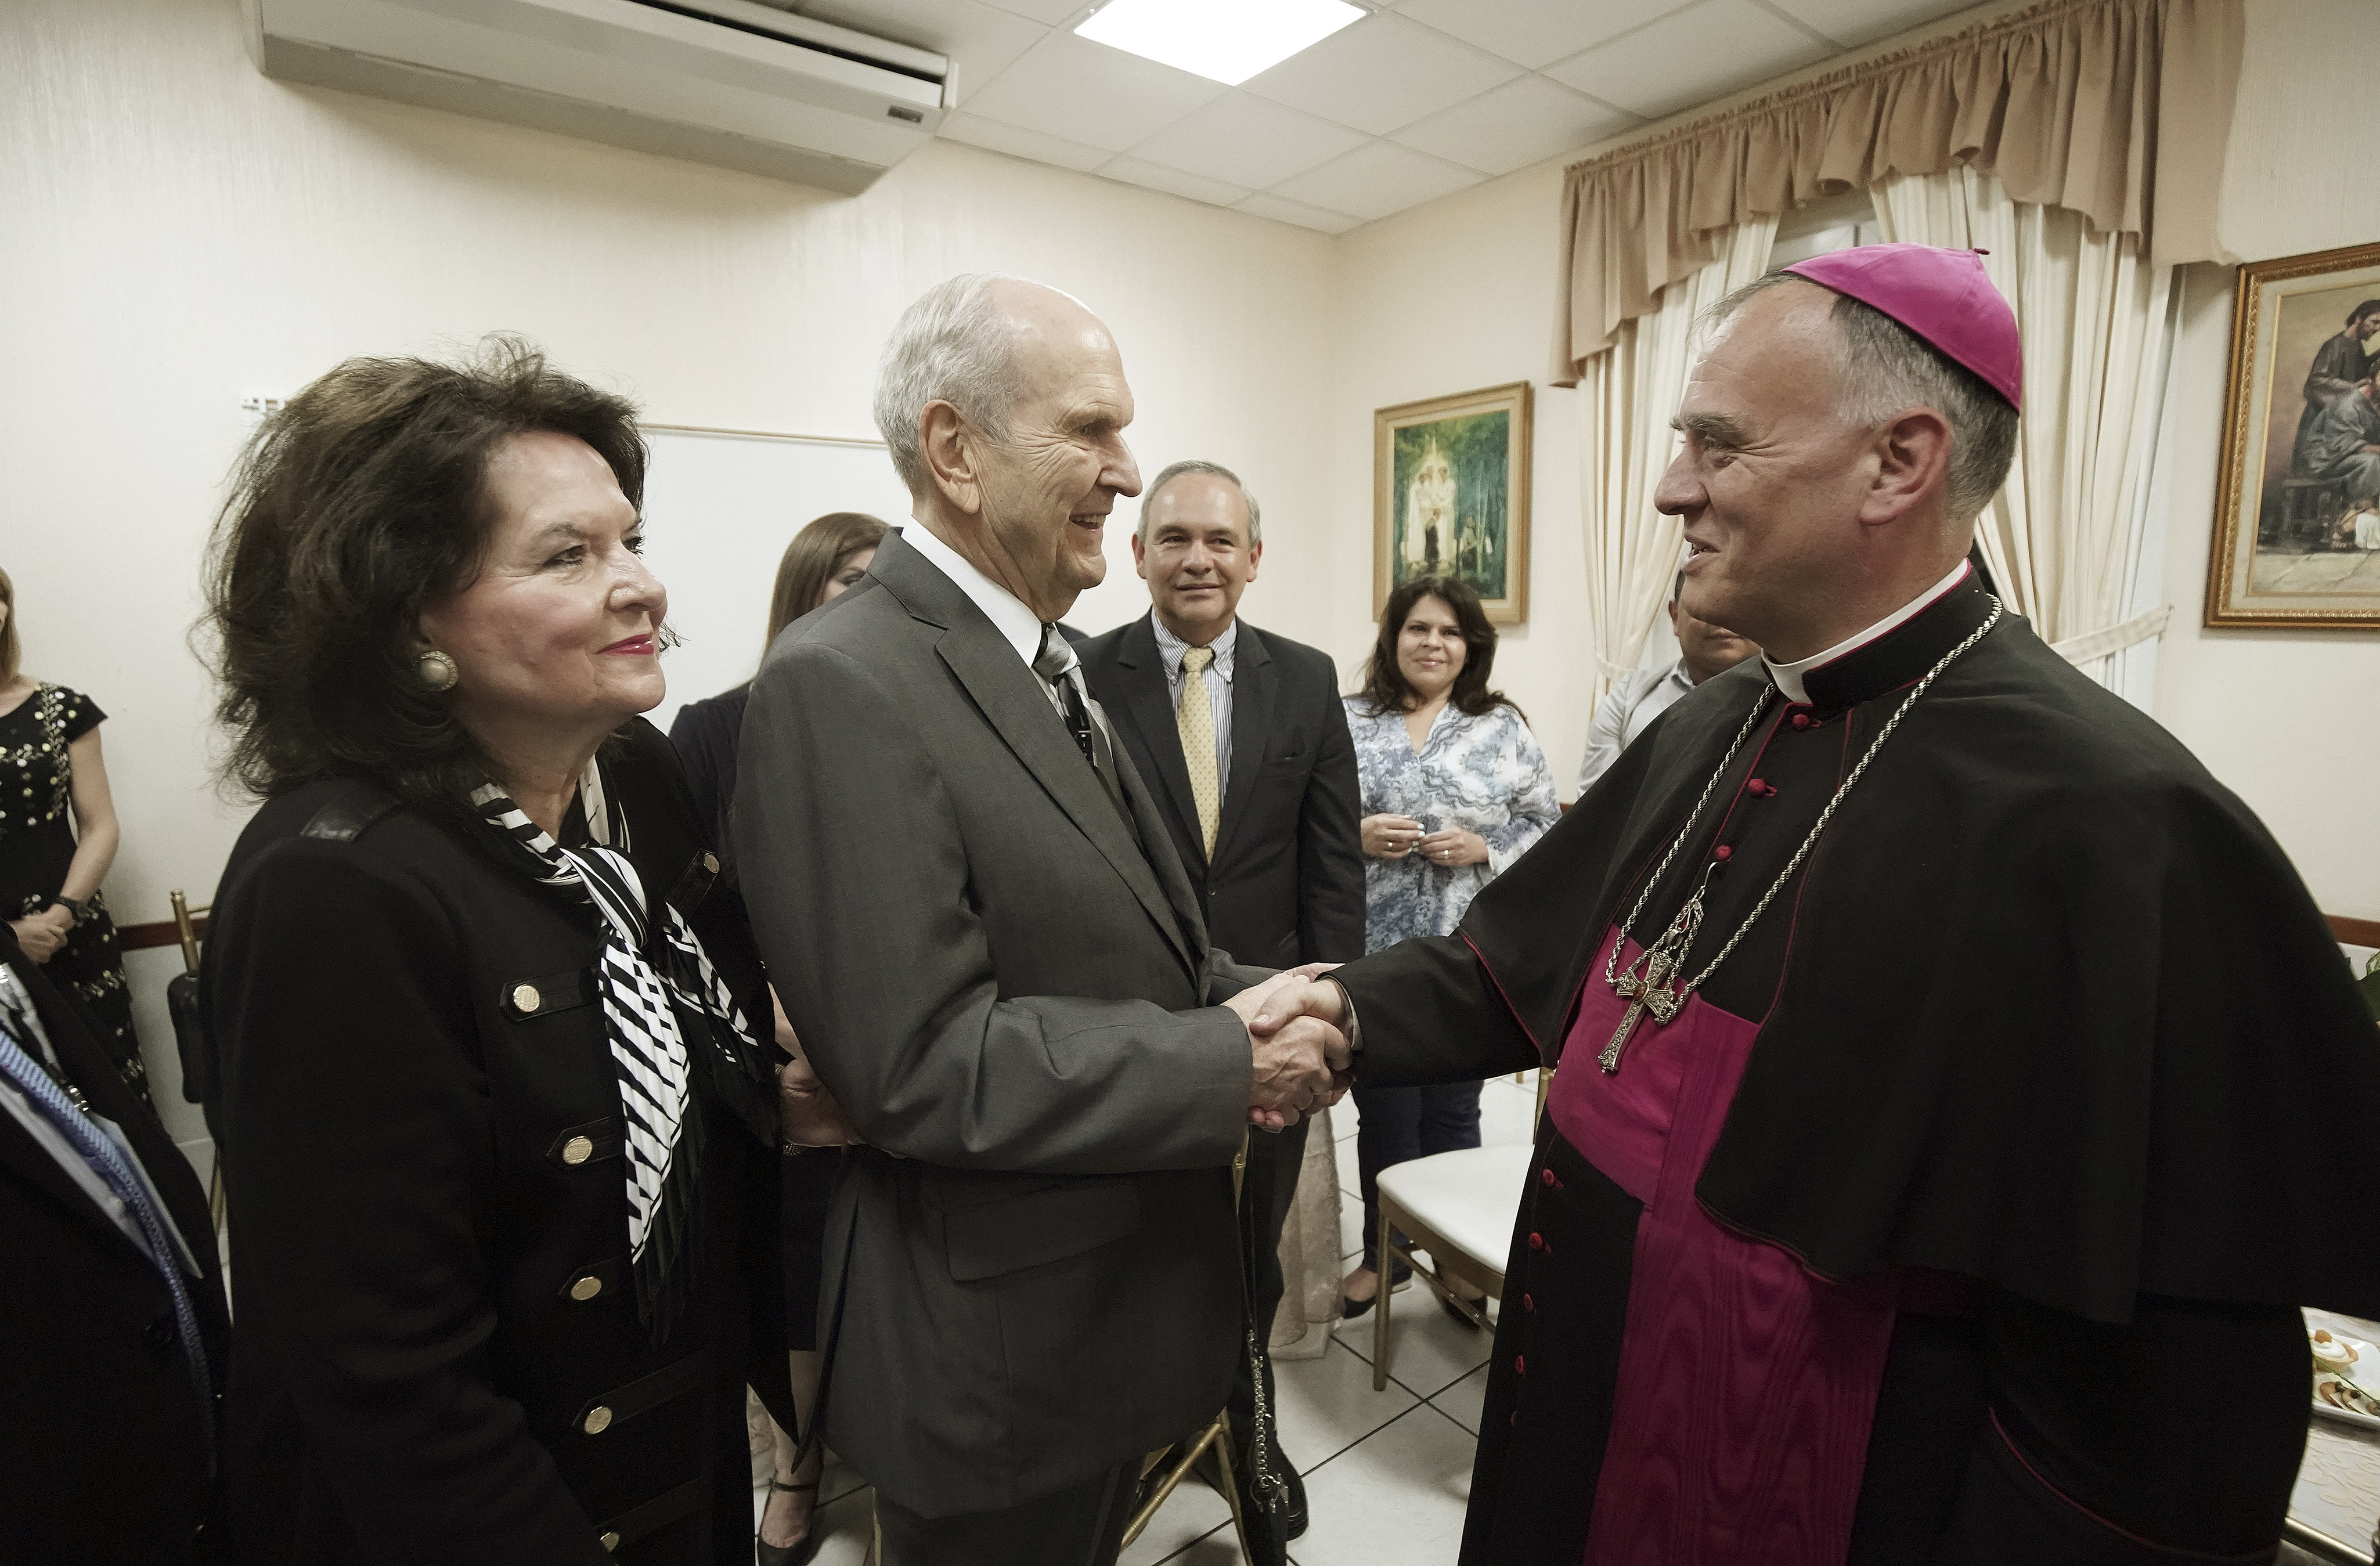 President Russell M. Nelson of The Church of Jesus Christ of Latter-day Saints and his wife, Sister Wendy Nelson, meet with Archbishop Henry Marie Denis Thevenin prior to a devotional in Guatemala City on Saturday, Aug. 24, 2019.